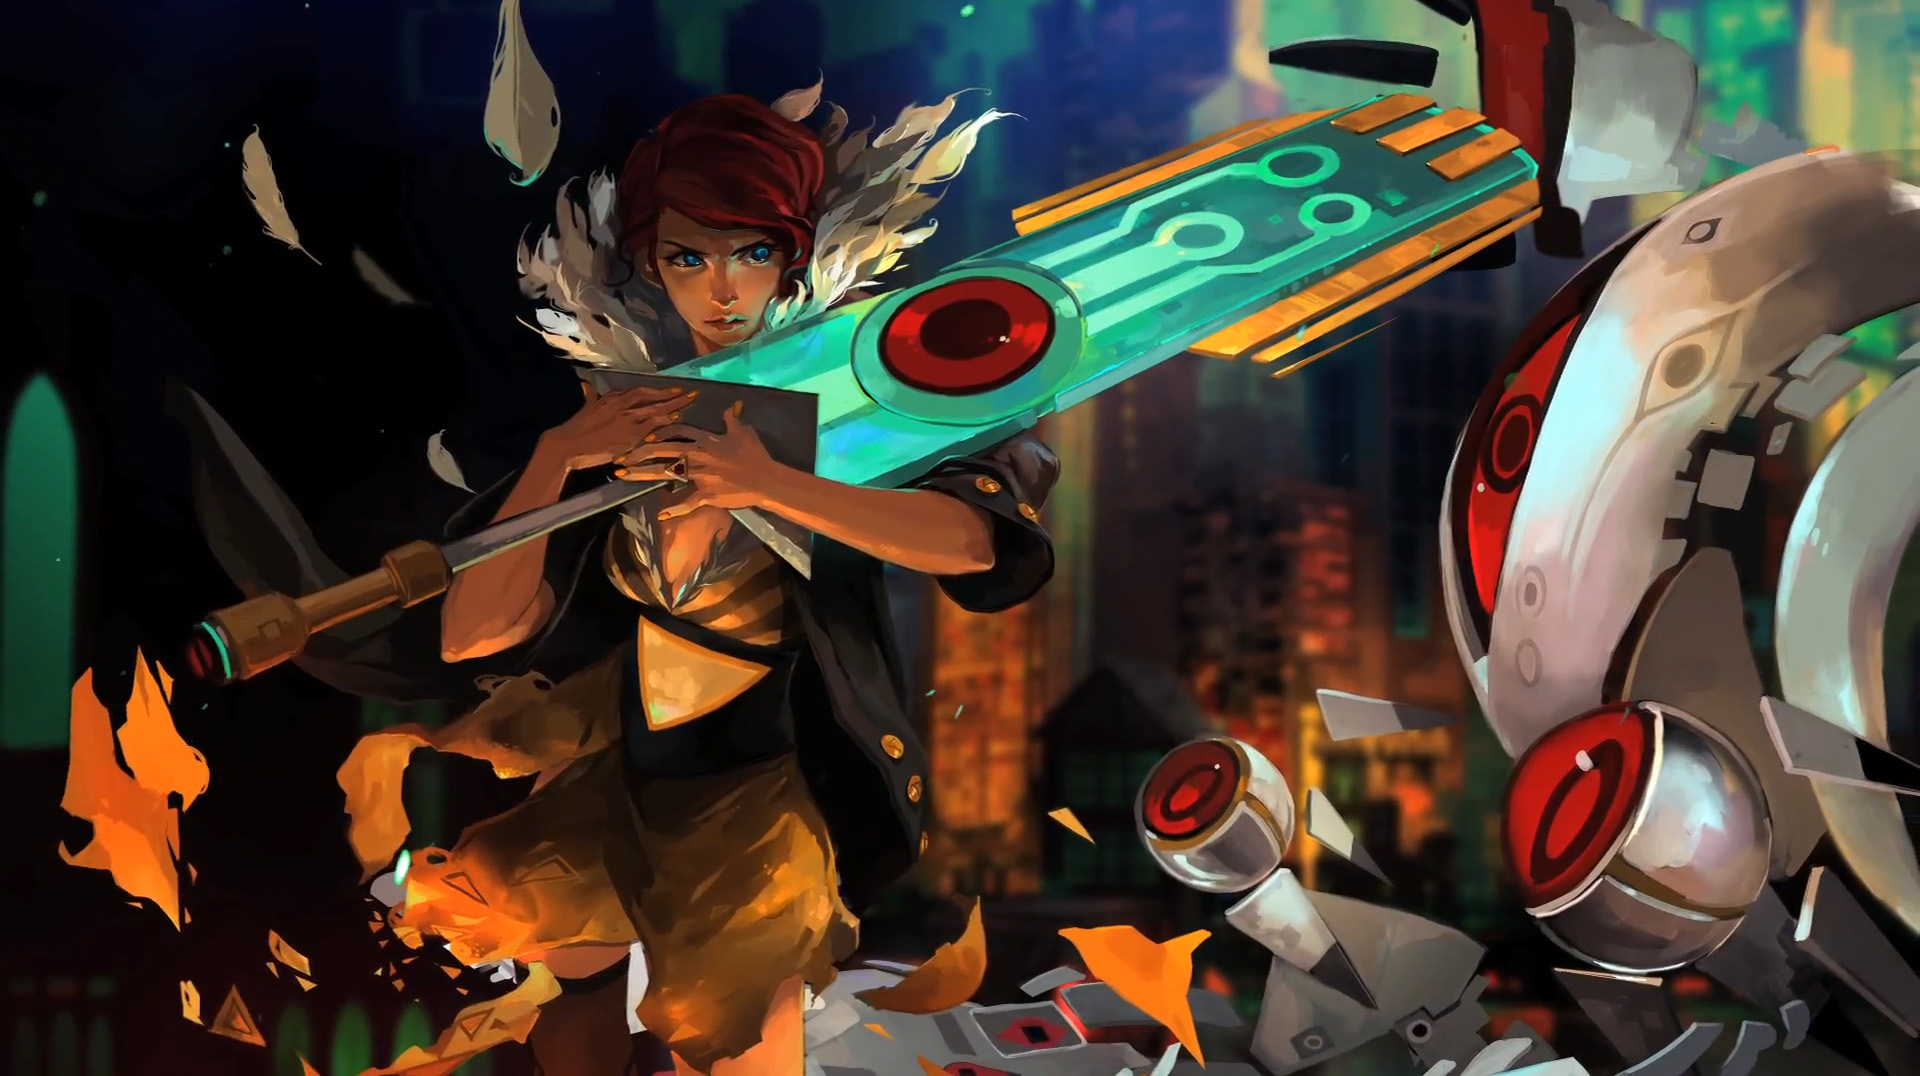 Supergiant Games' Transistor will feature Bastion narrator